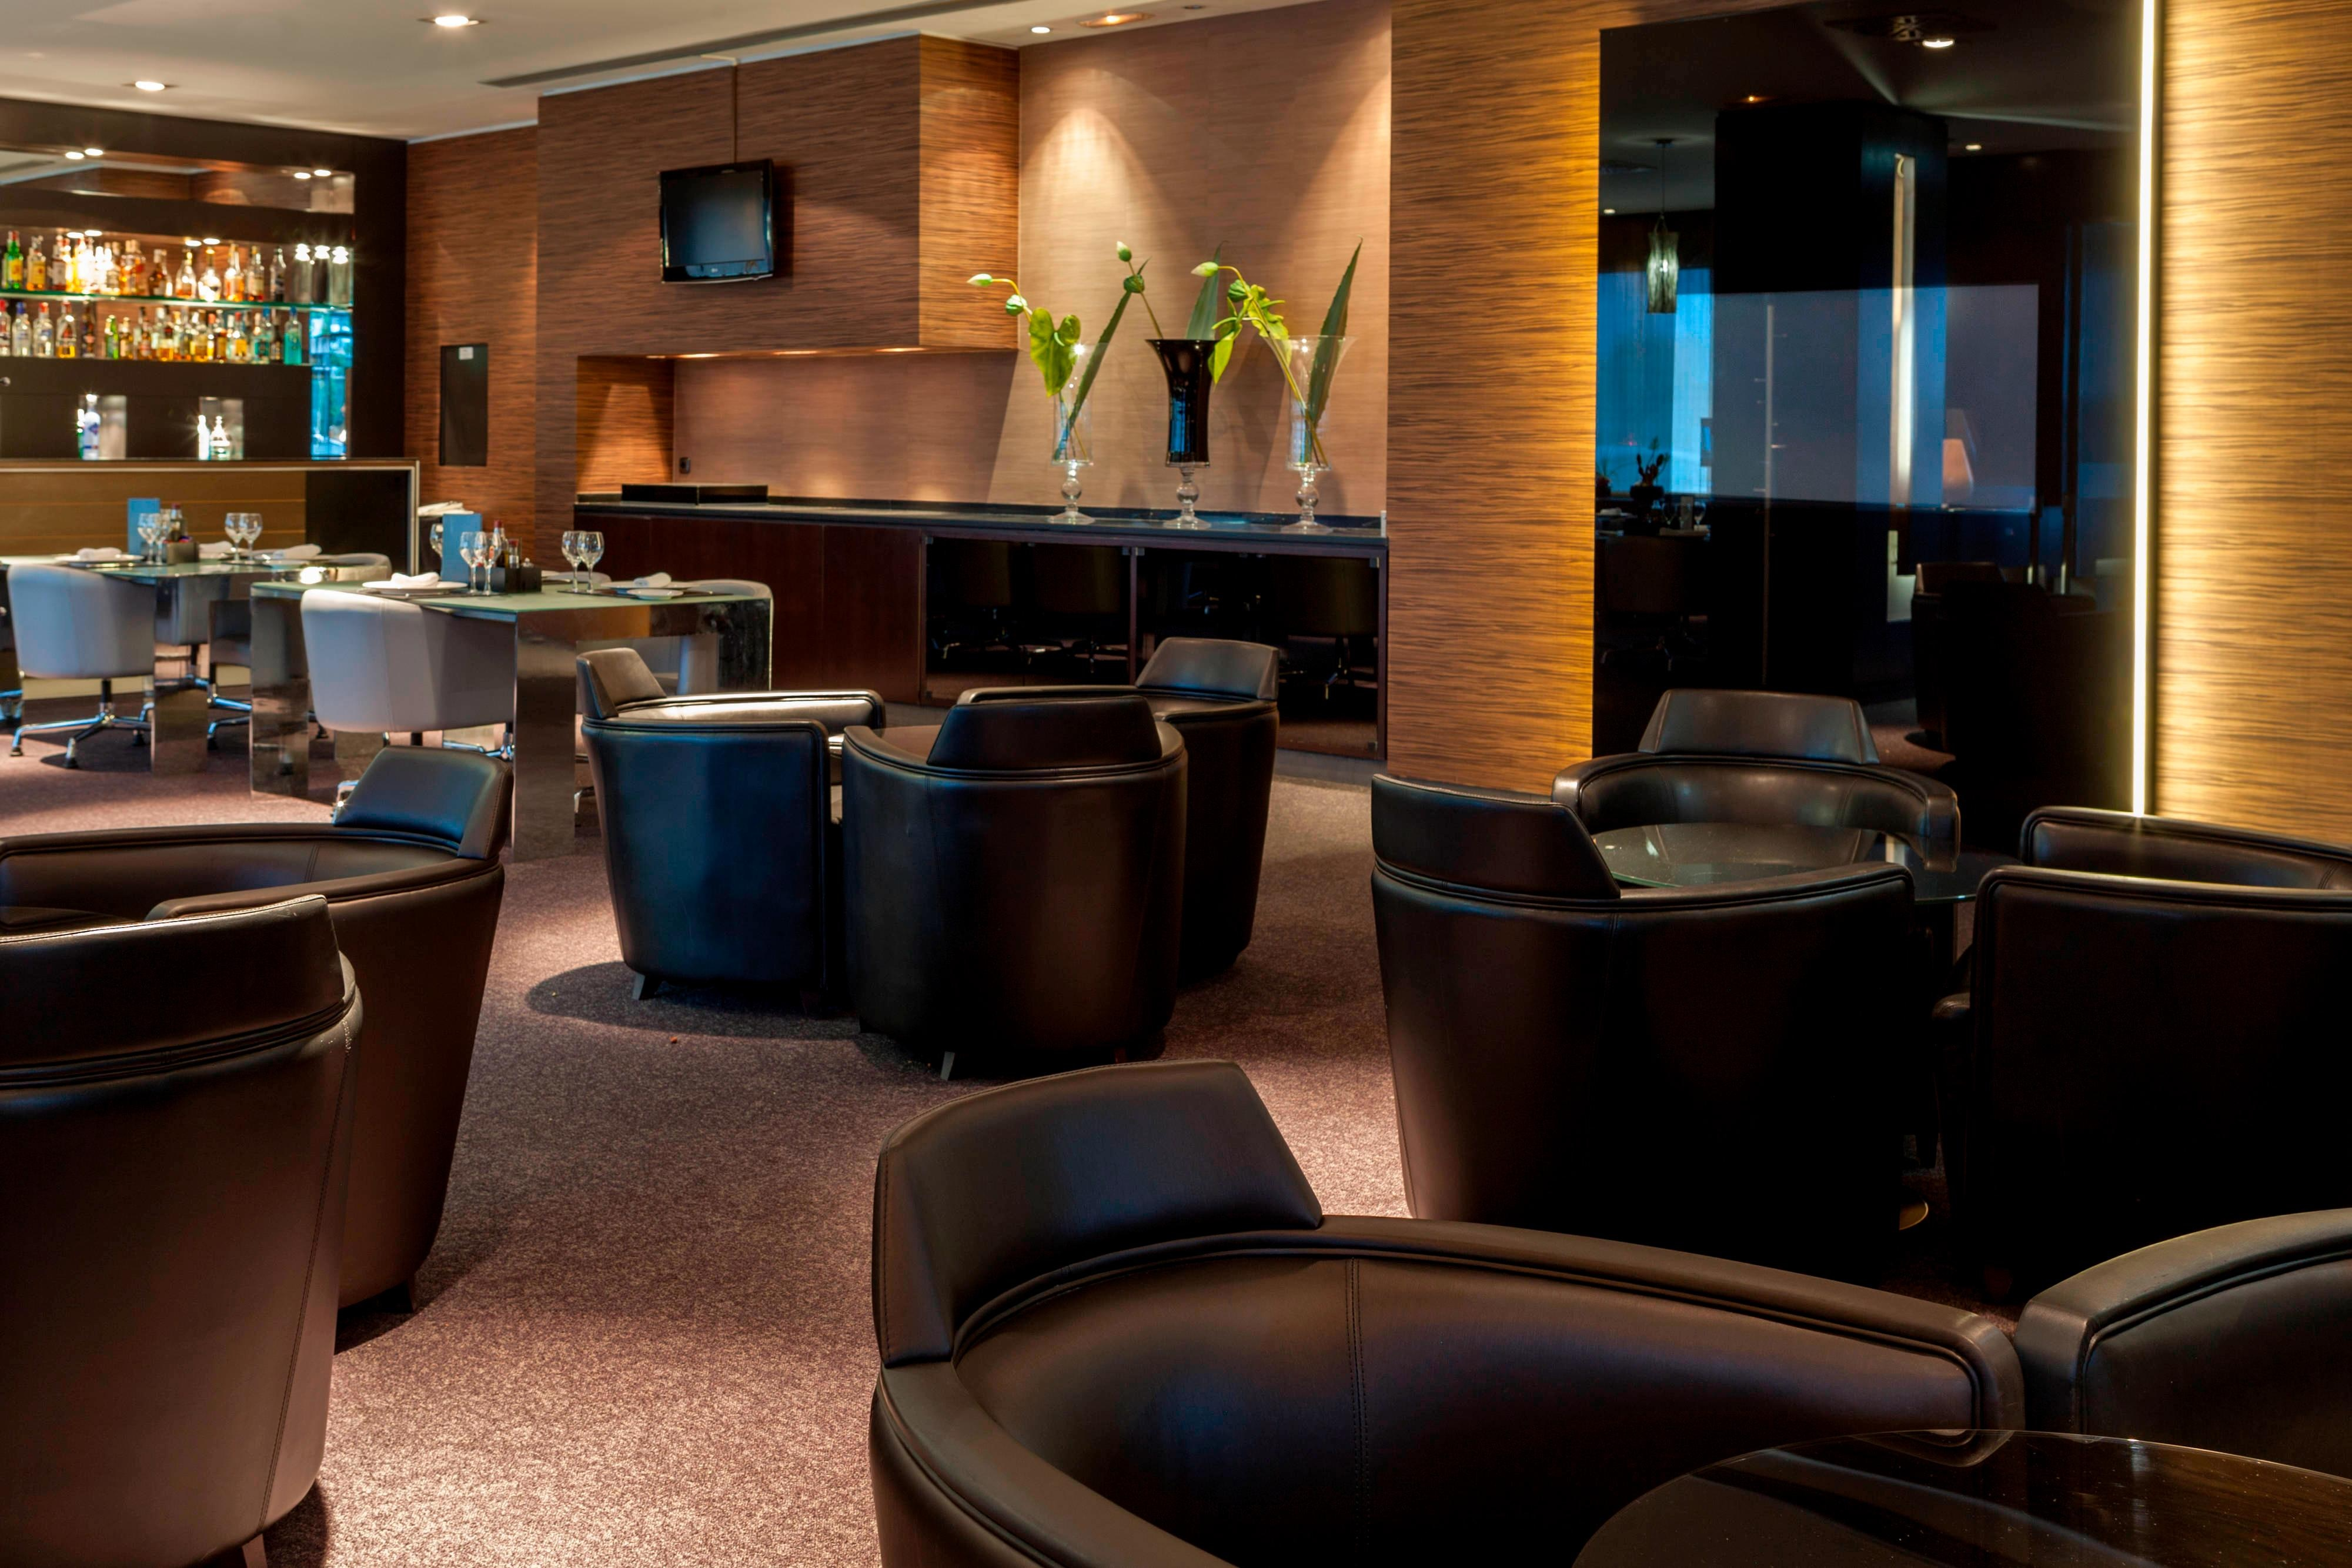 Hotel Lounge in Gijón